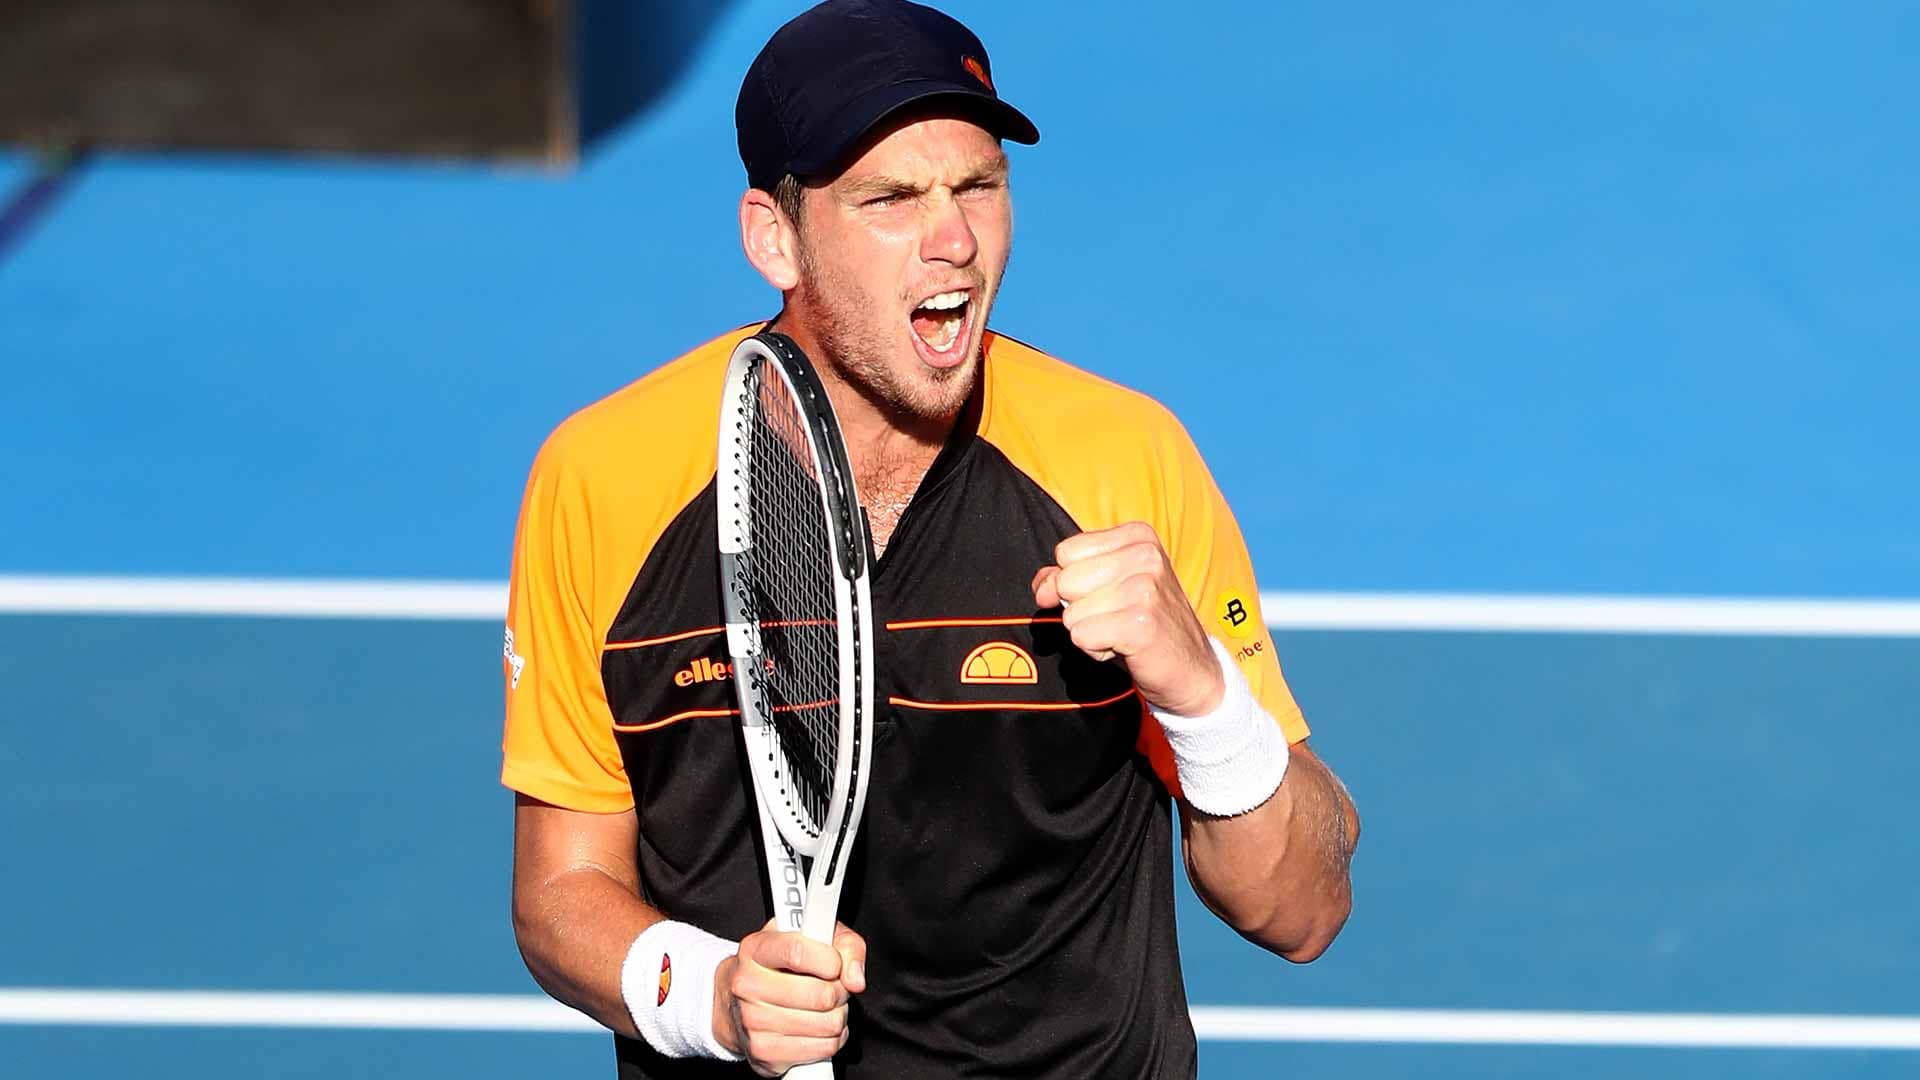 Cameron Norrie reaches his first ATP Tour final in Auckland